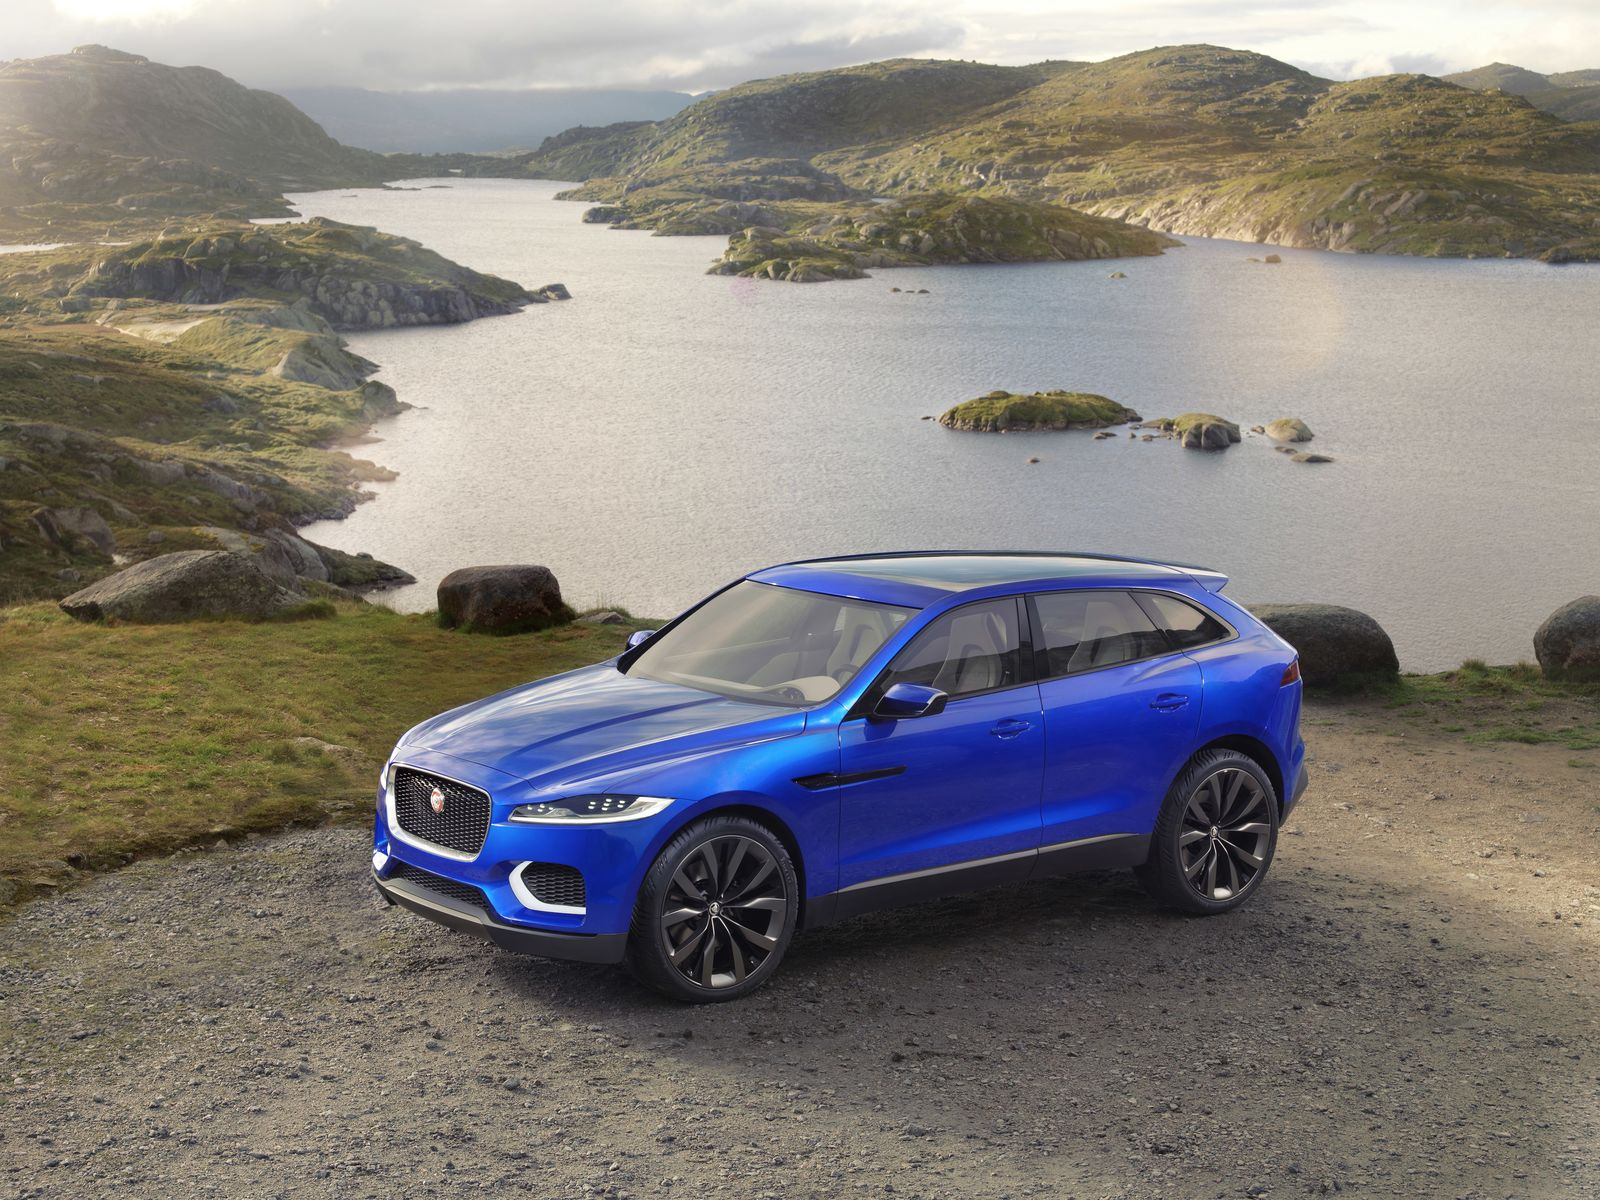 In addition the f pace comes with the jaguar s legendary electric steering system and torque vectoring technology first developed for f type and the torque